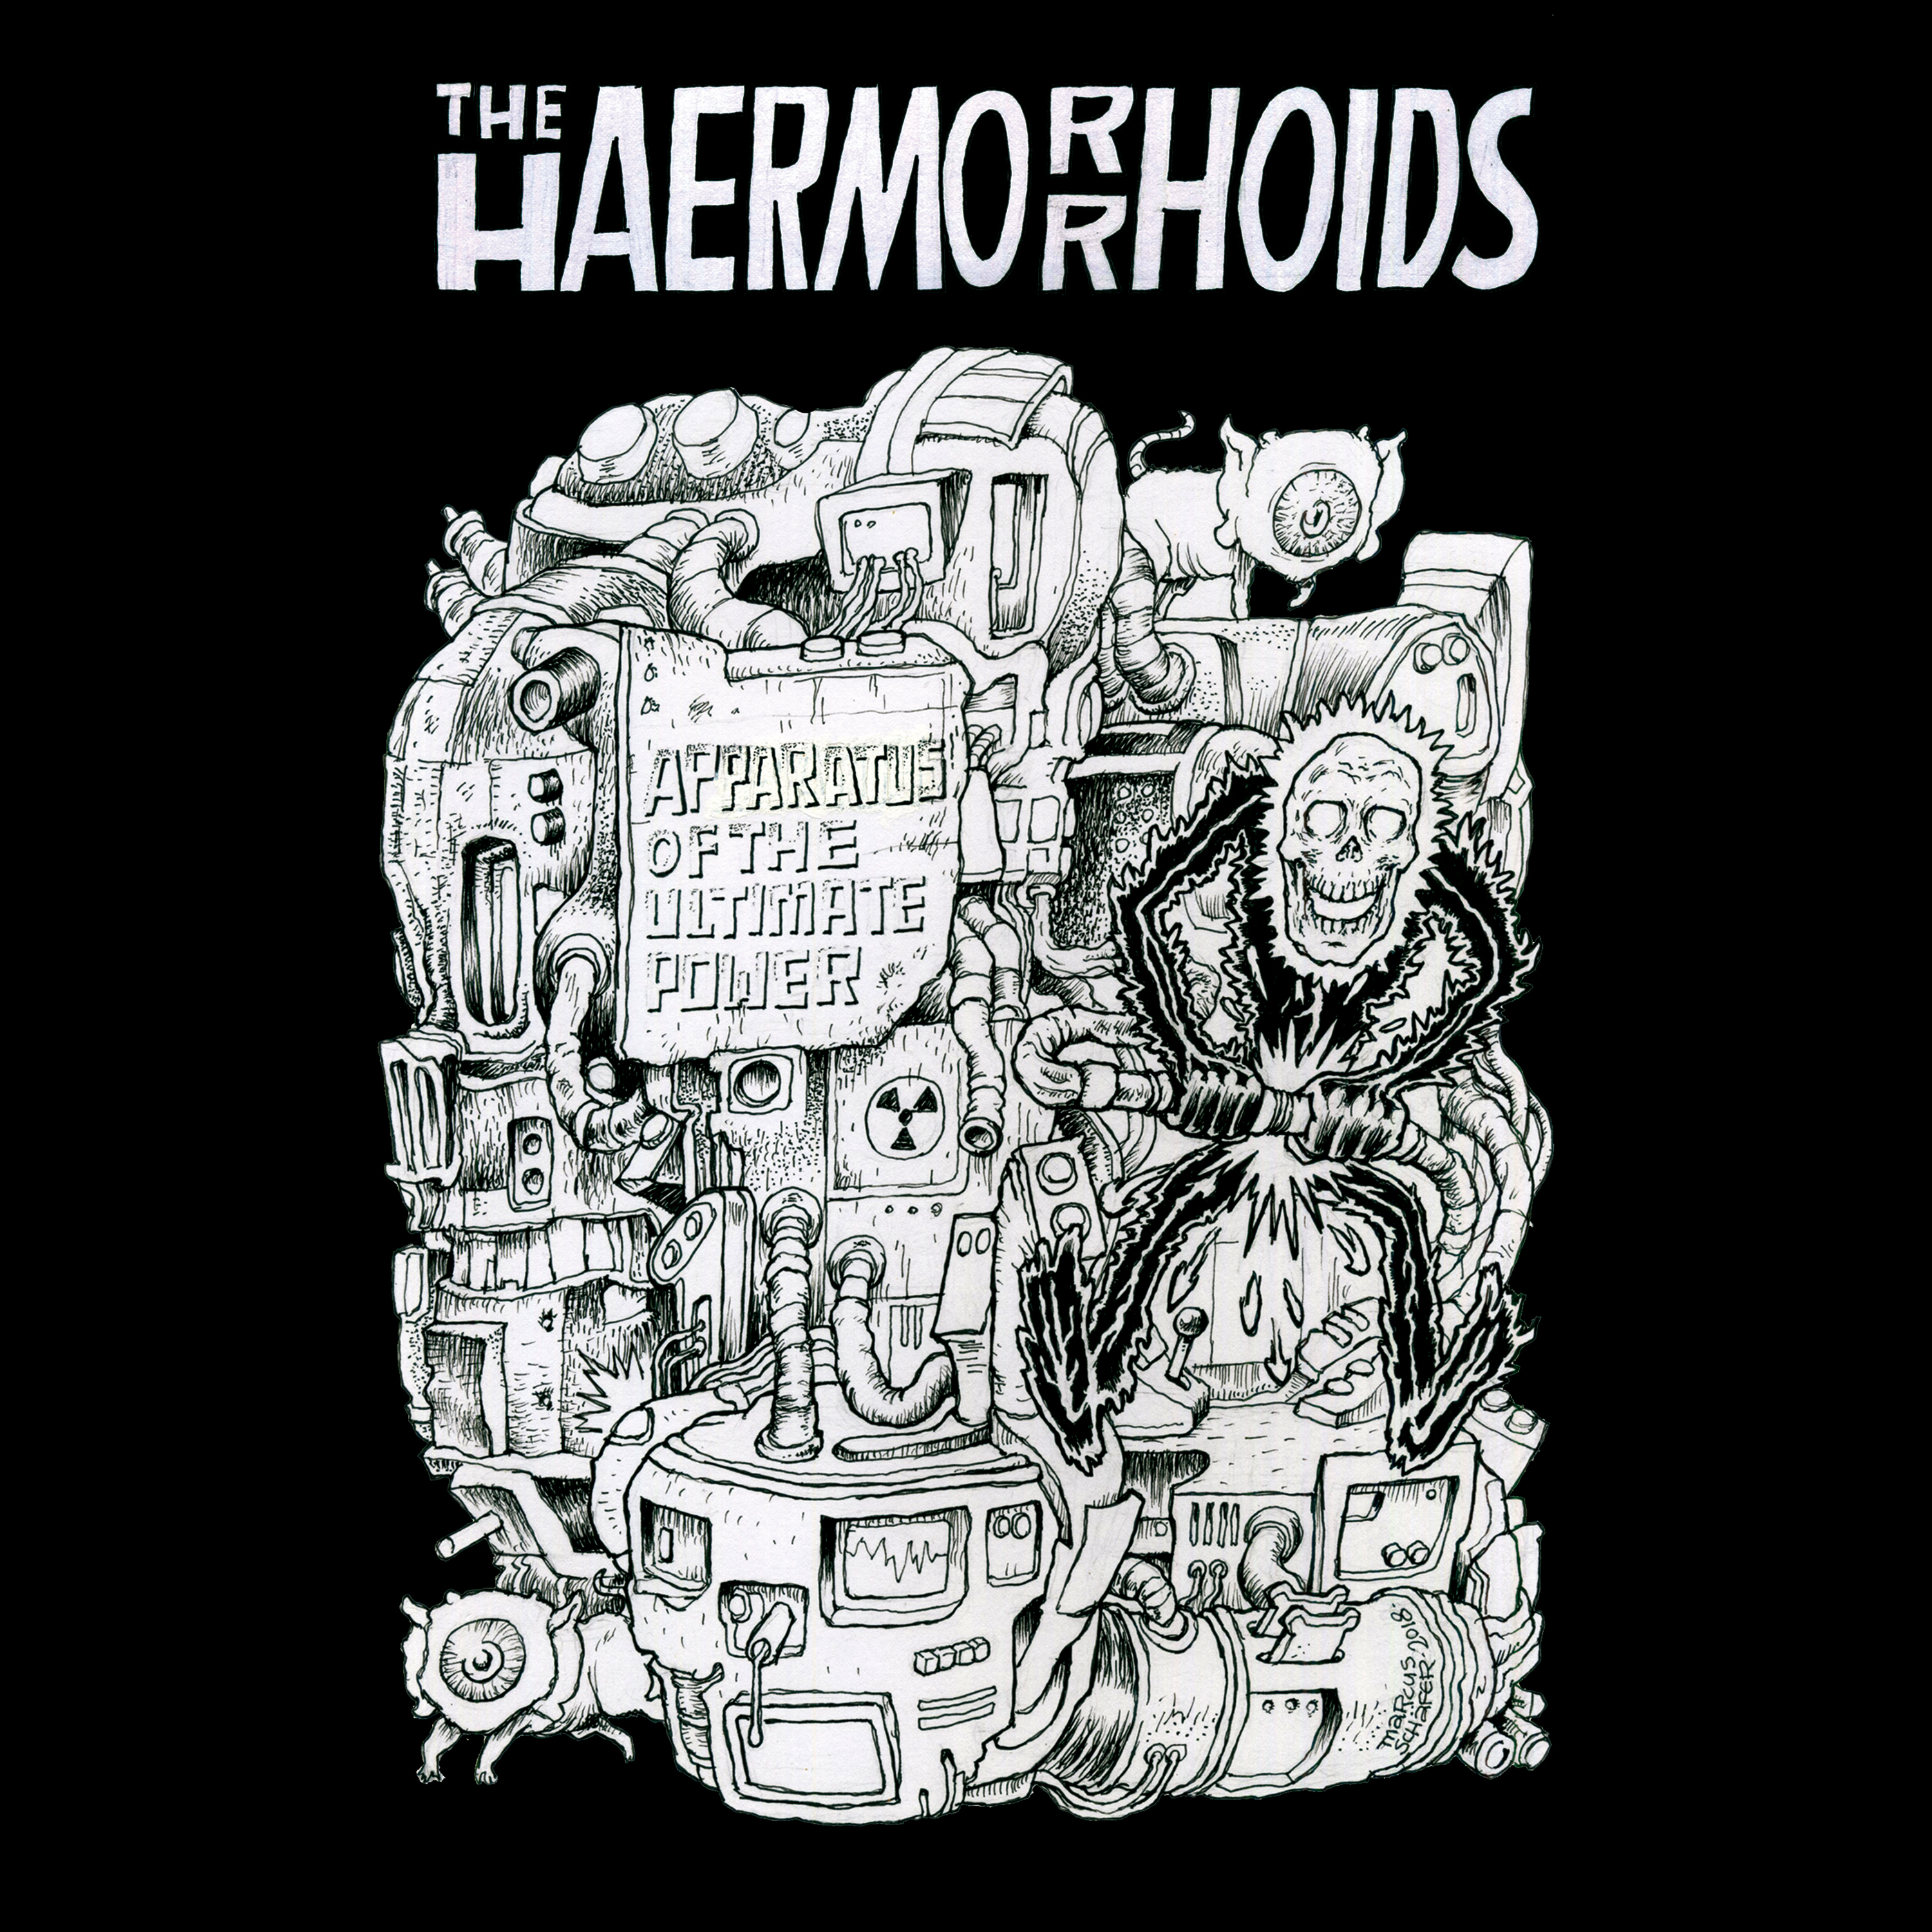 The Haermorrhoids - Apparatus Of The Ultimate Power